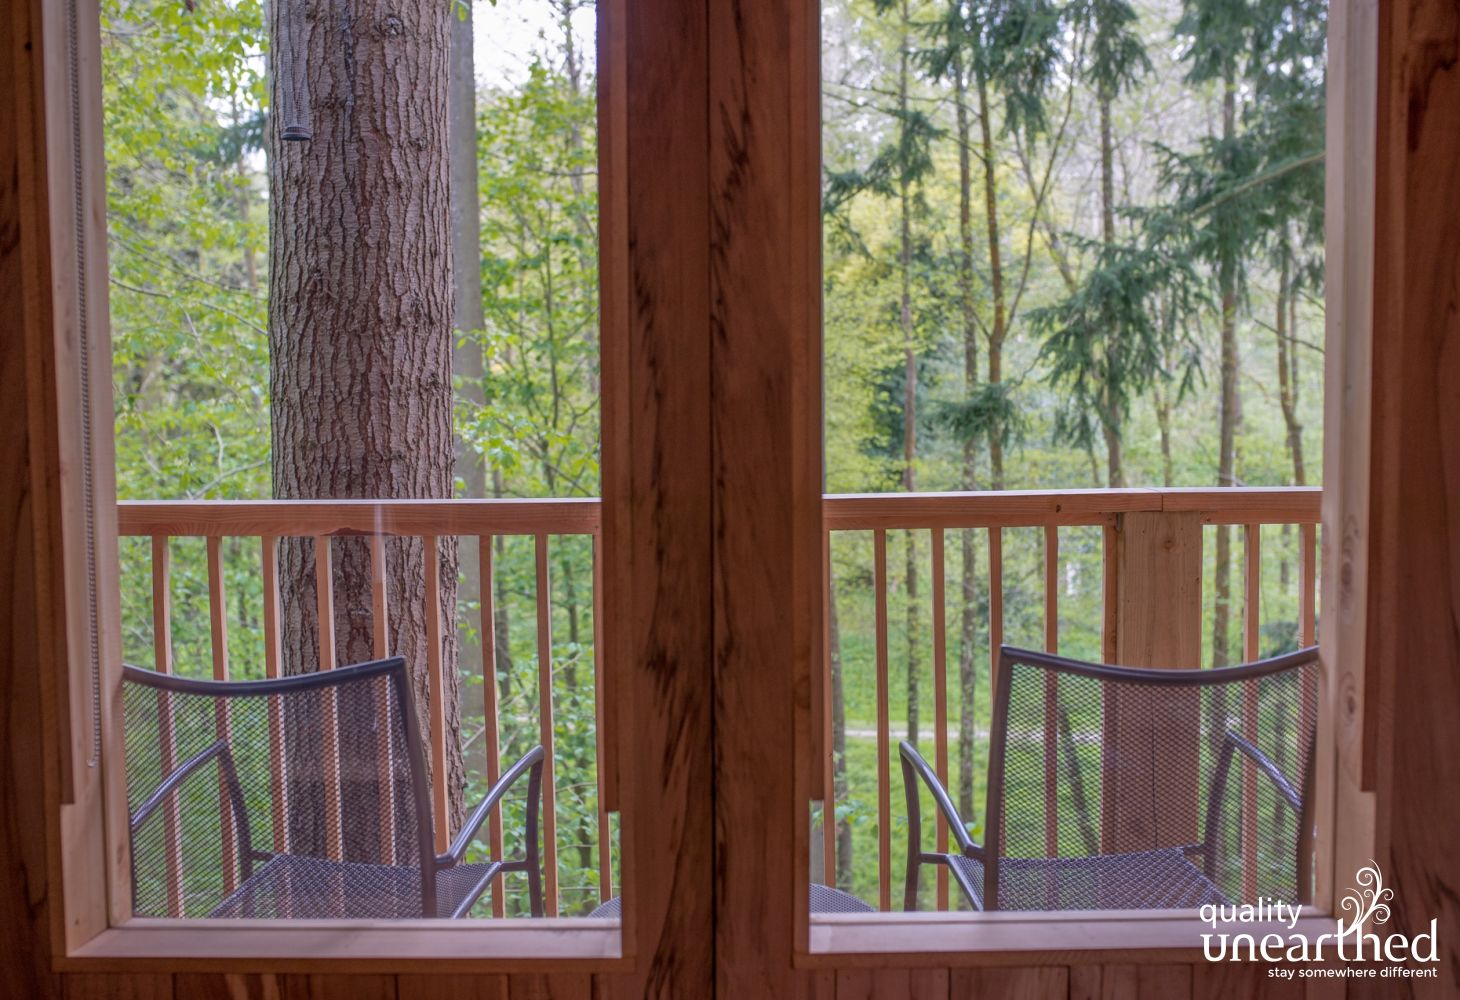 View from inside the treehouse for 3 to the woodland which forms part of this 25 acre estate